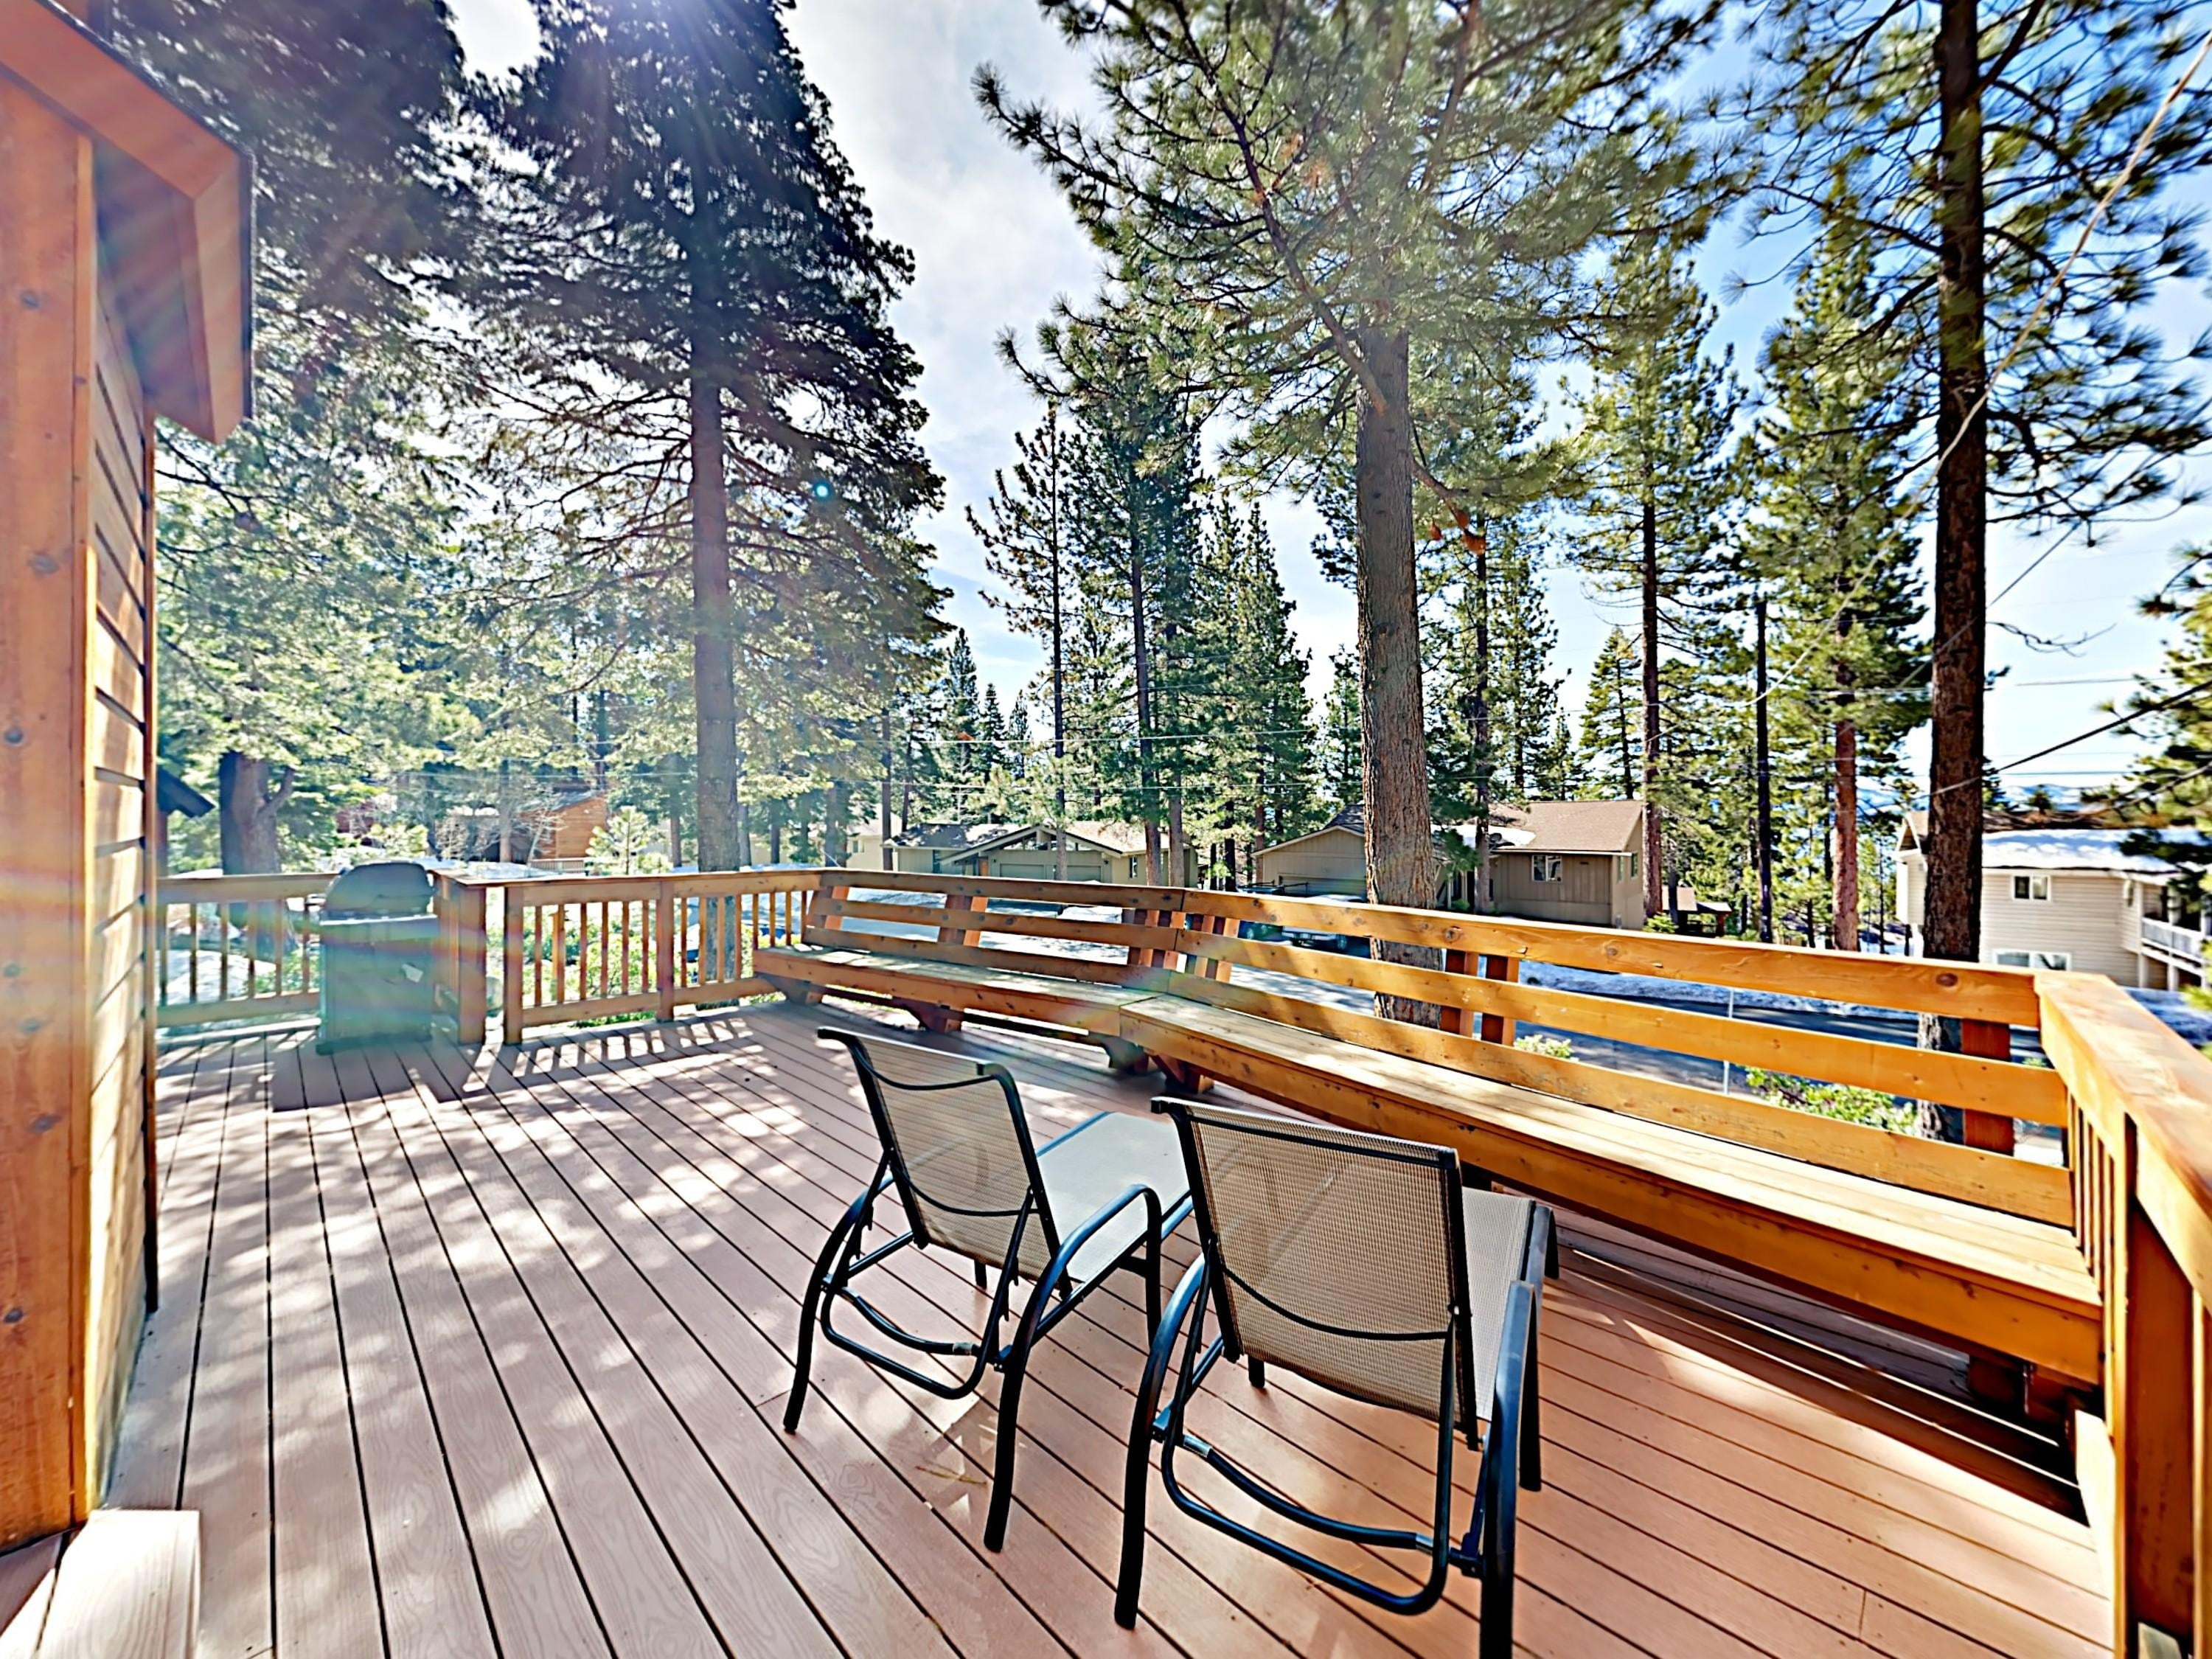 The deck offers a wonderful view of the surrounding pines.